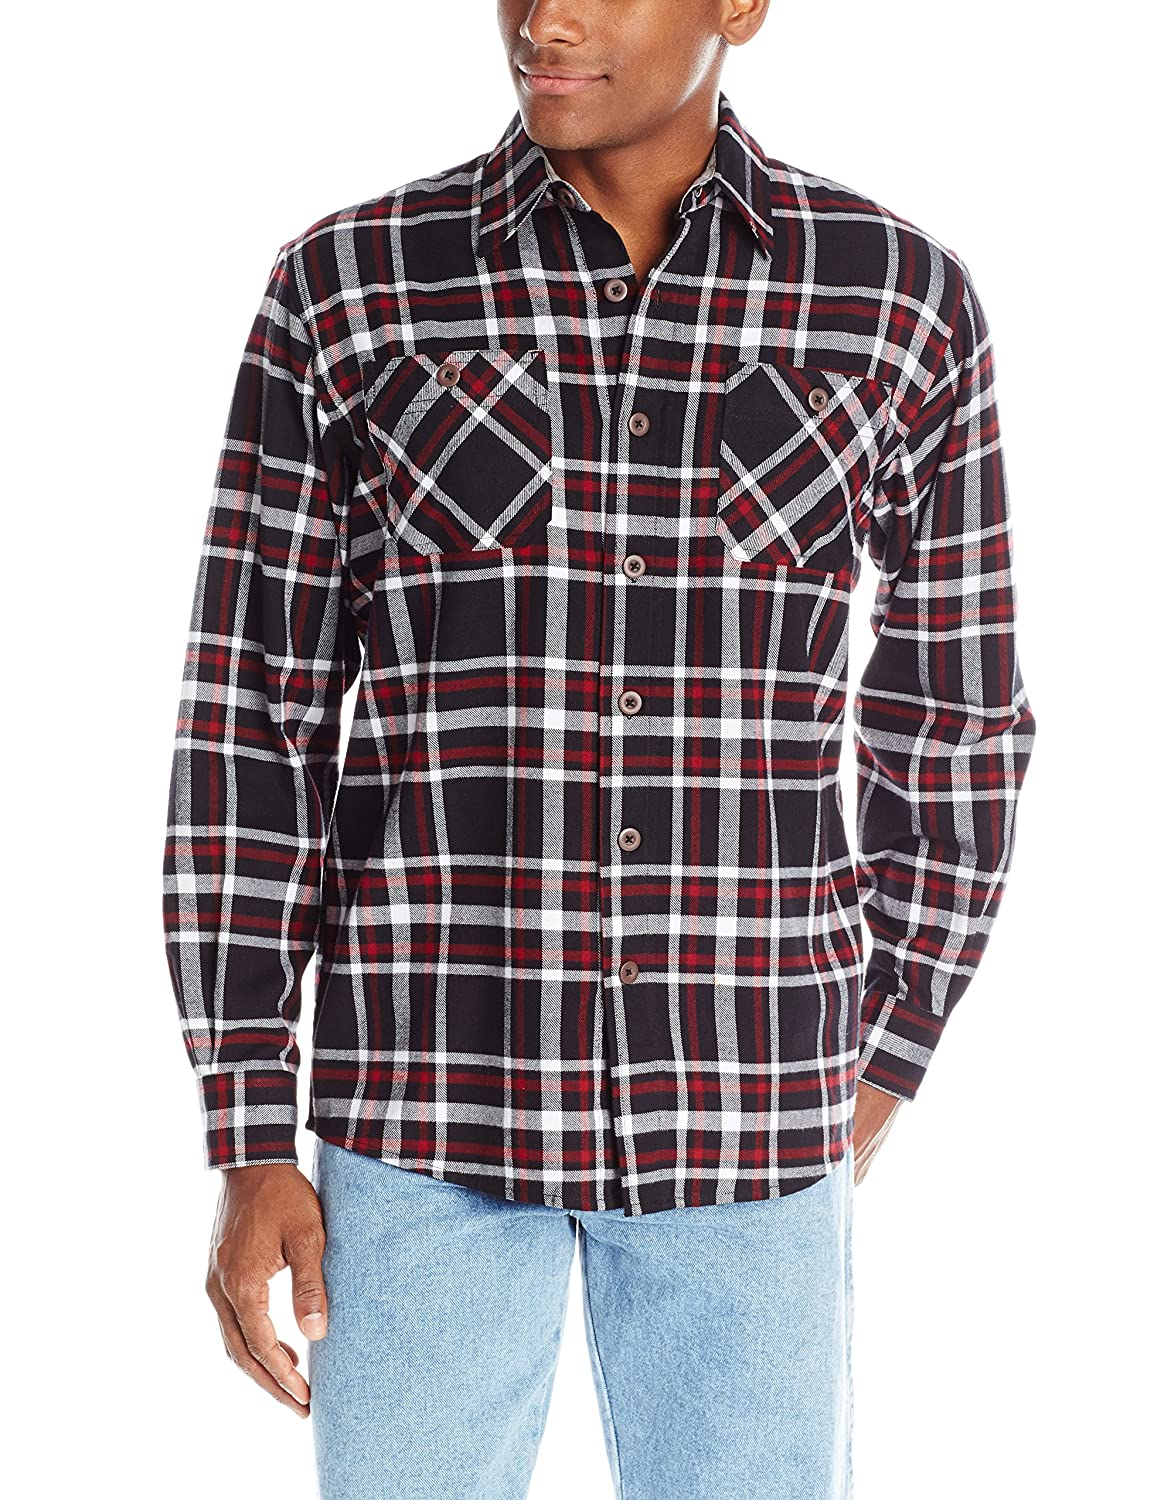 5683935c692 Flannel Shirts Business Casual